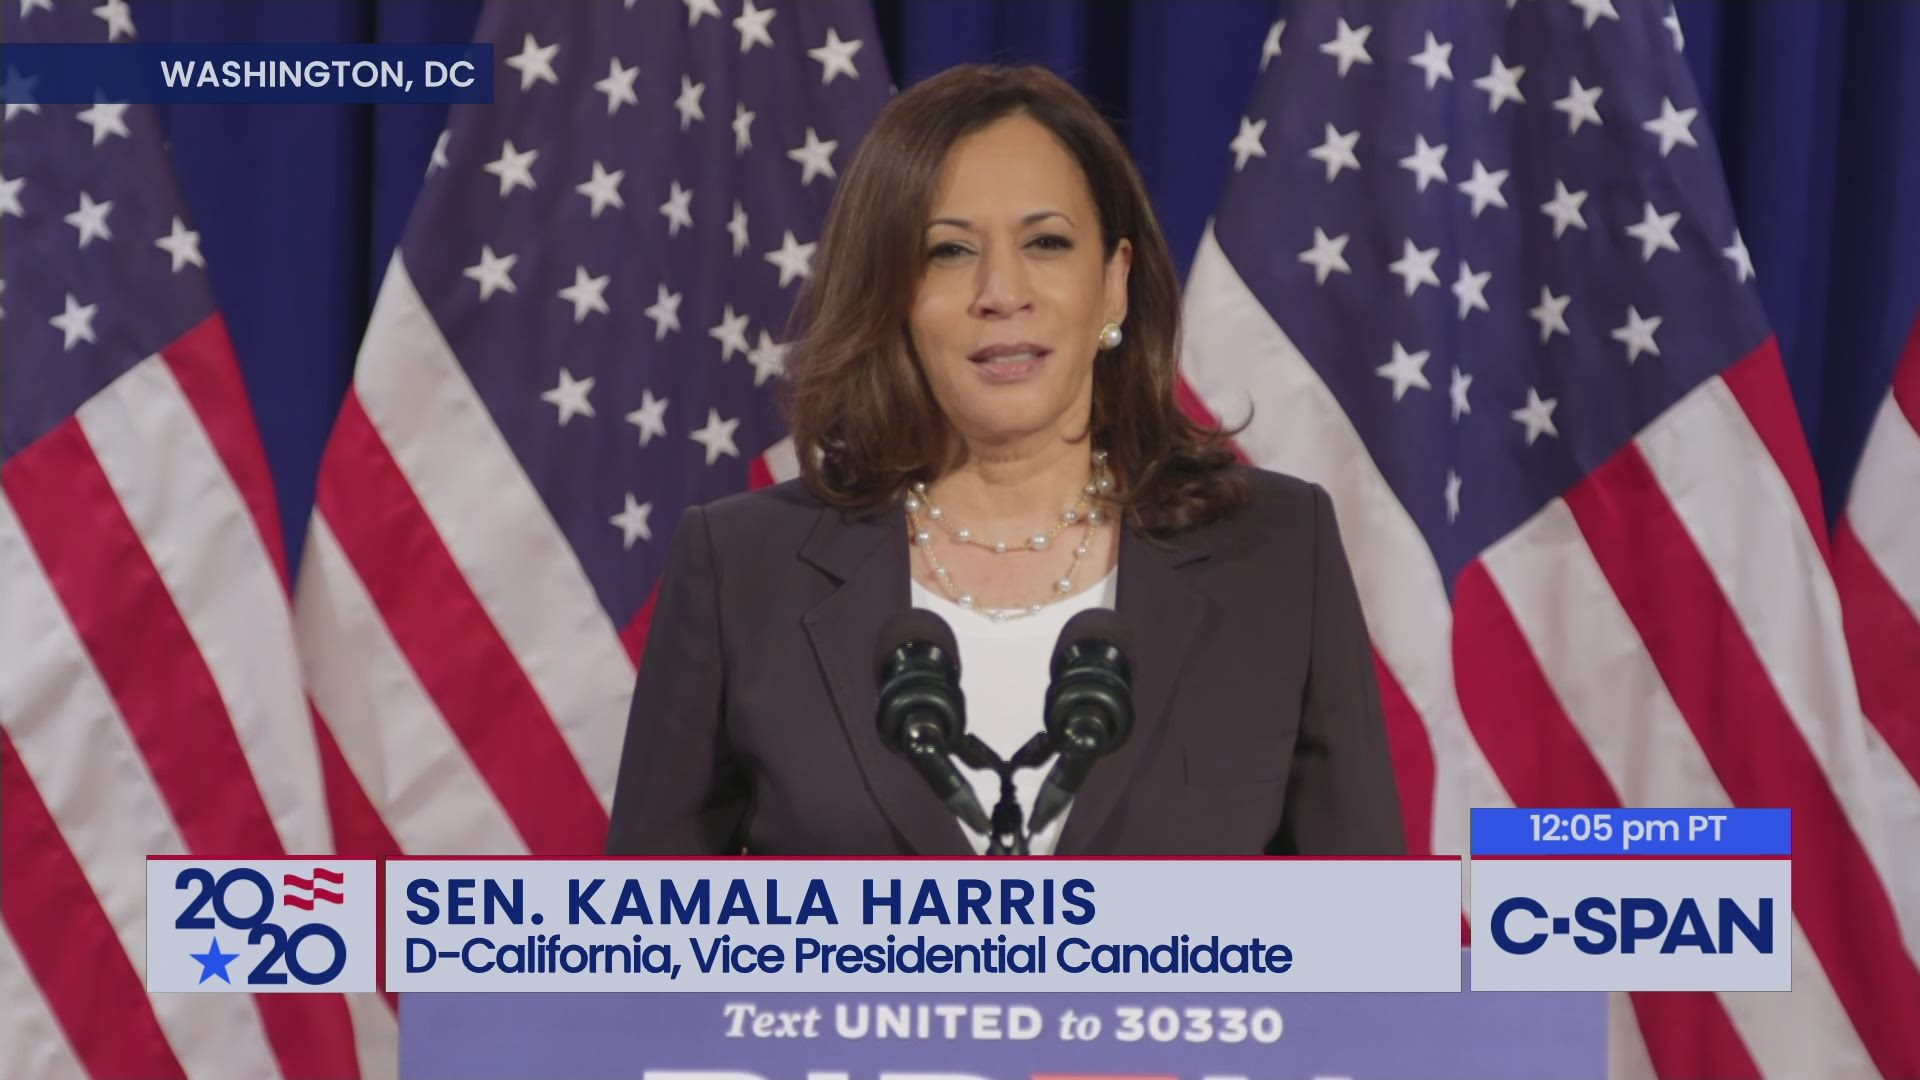 Senator Kamala Harris Remarks On Covid 19 And The Economy C Span Org